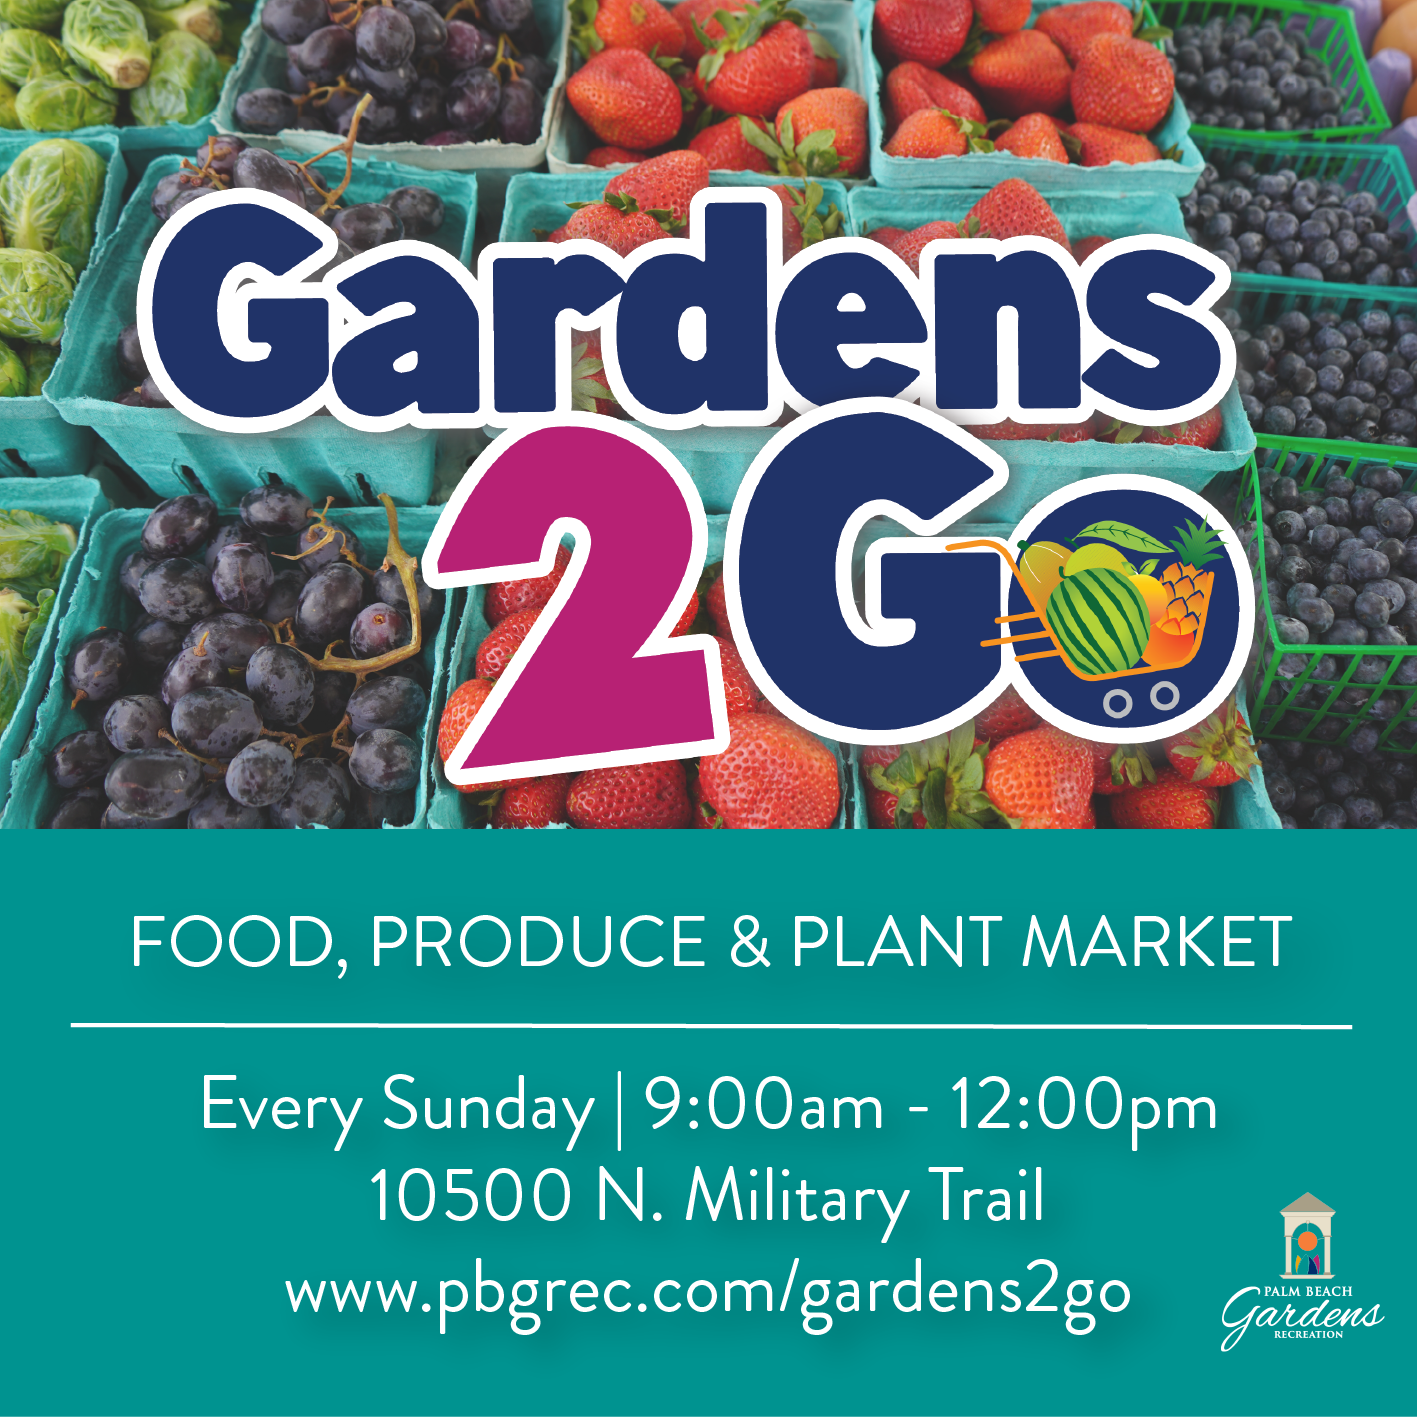 Gardens 2 Go Market. Every Sunday, 9am to 12pm. 10500 North Military Trail.